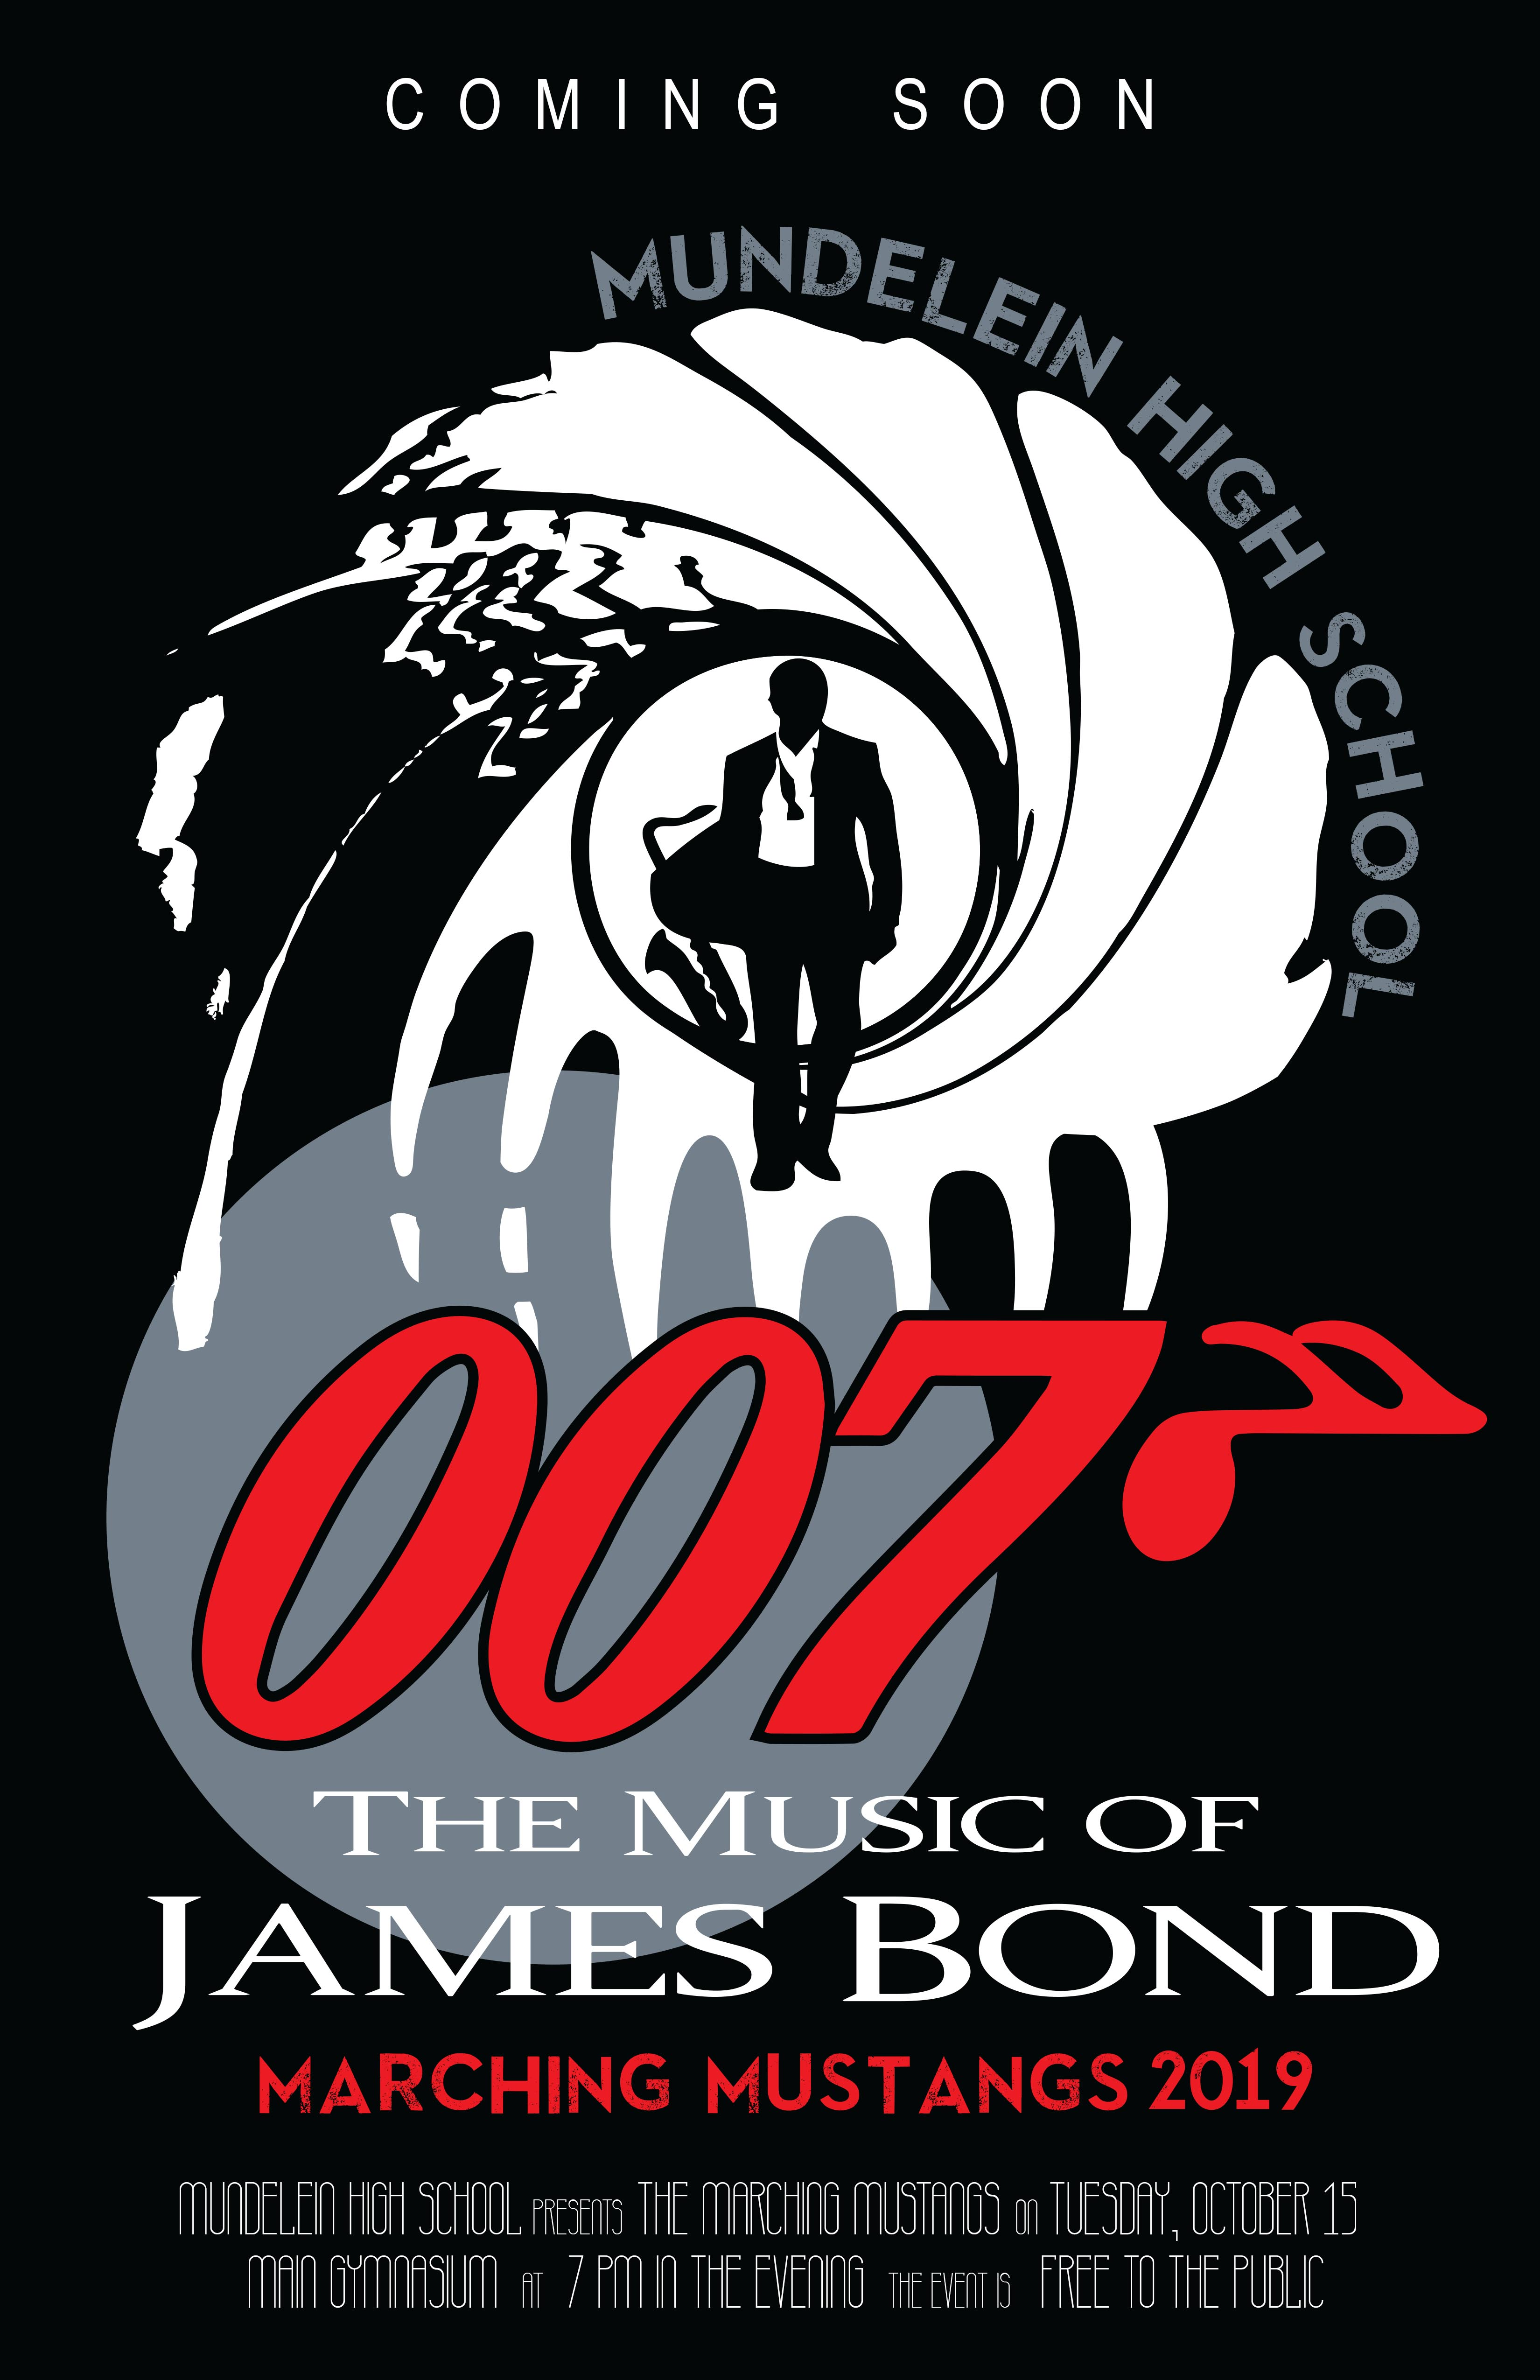 Poster advertising the 007 Theme for the concert